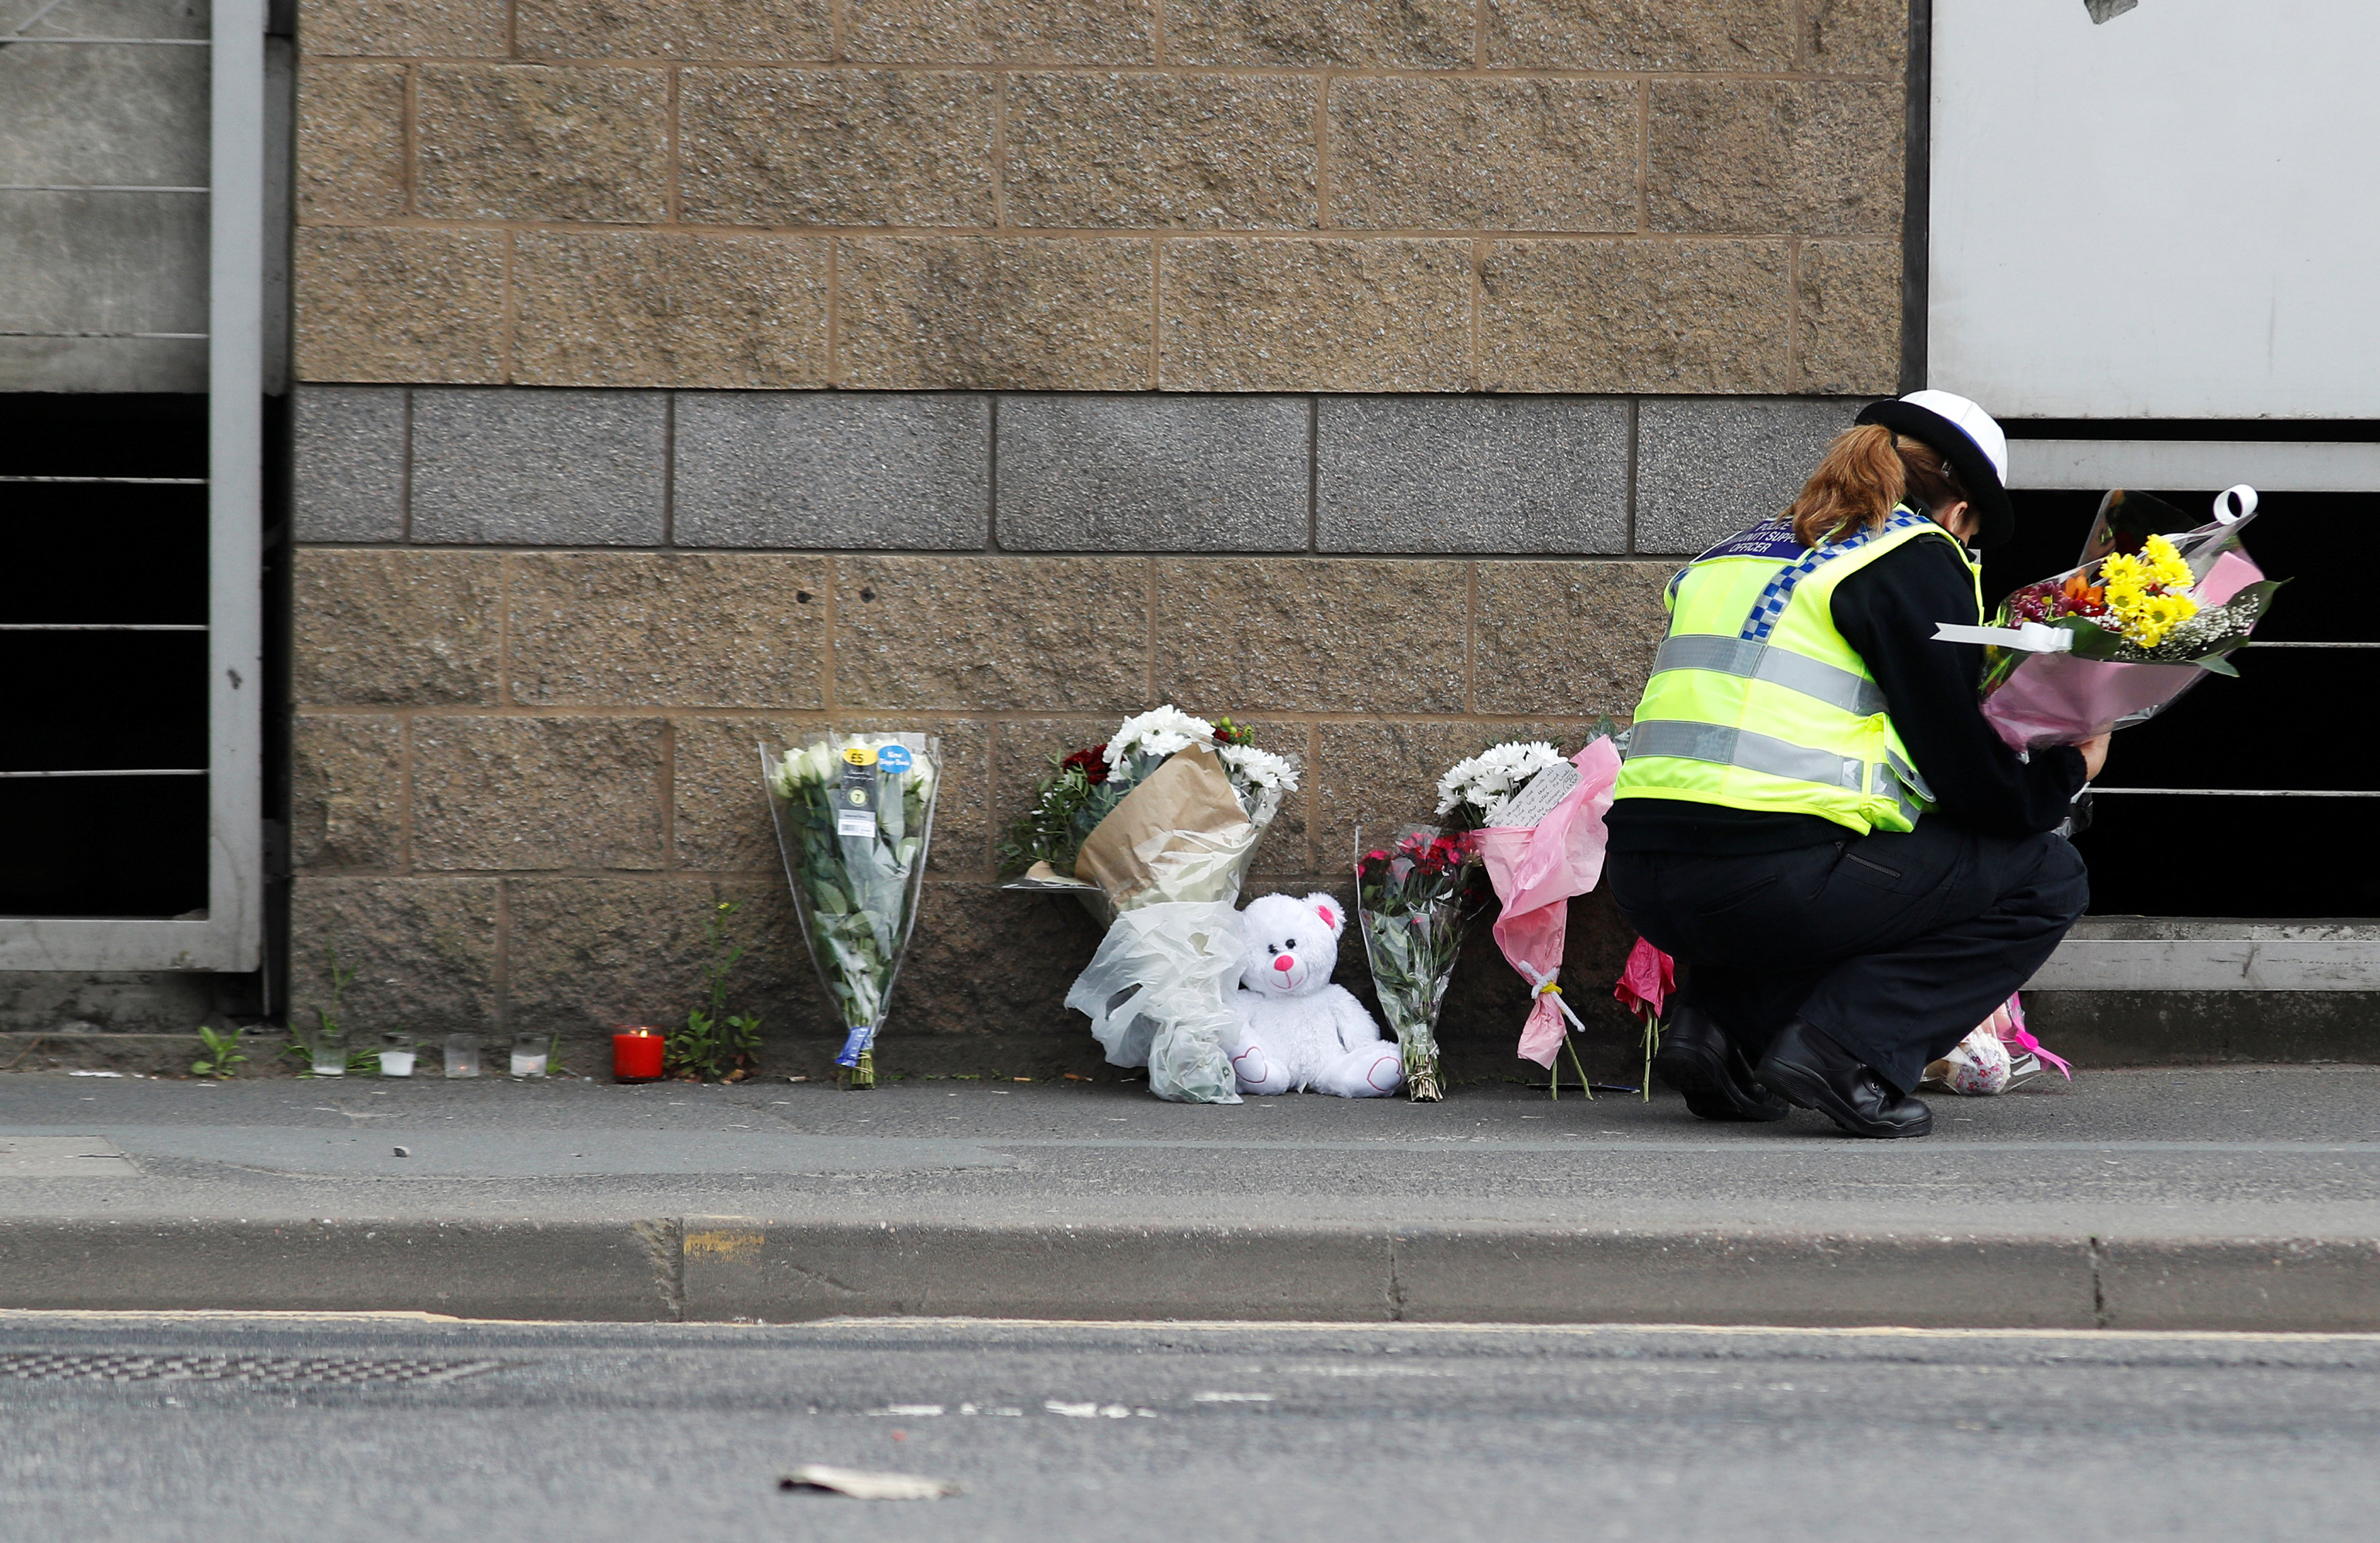 A community support officer places flowers near Manchester Arena in Manchester, Britain May 24, 2017. REUTERS/Peter Nicholls